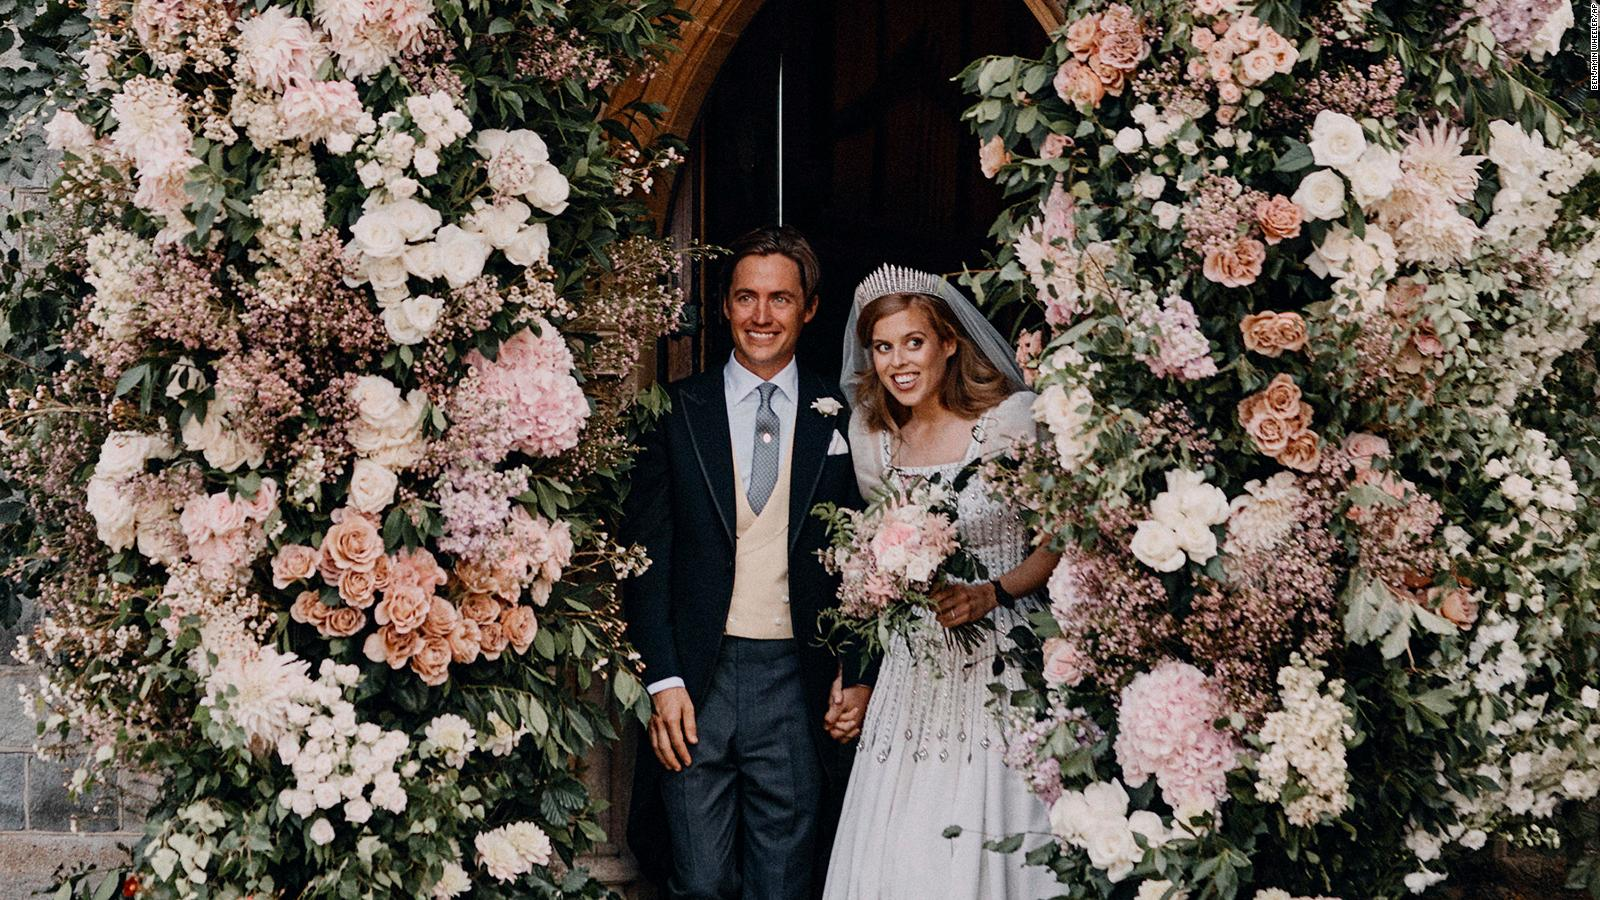 Princess Beatrice Daughter Of Prince Andrew Releases Photos Of